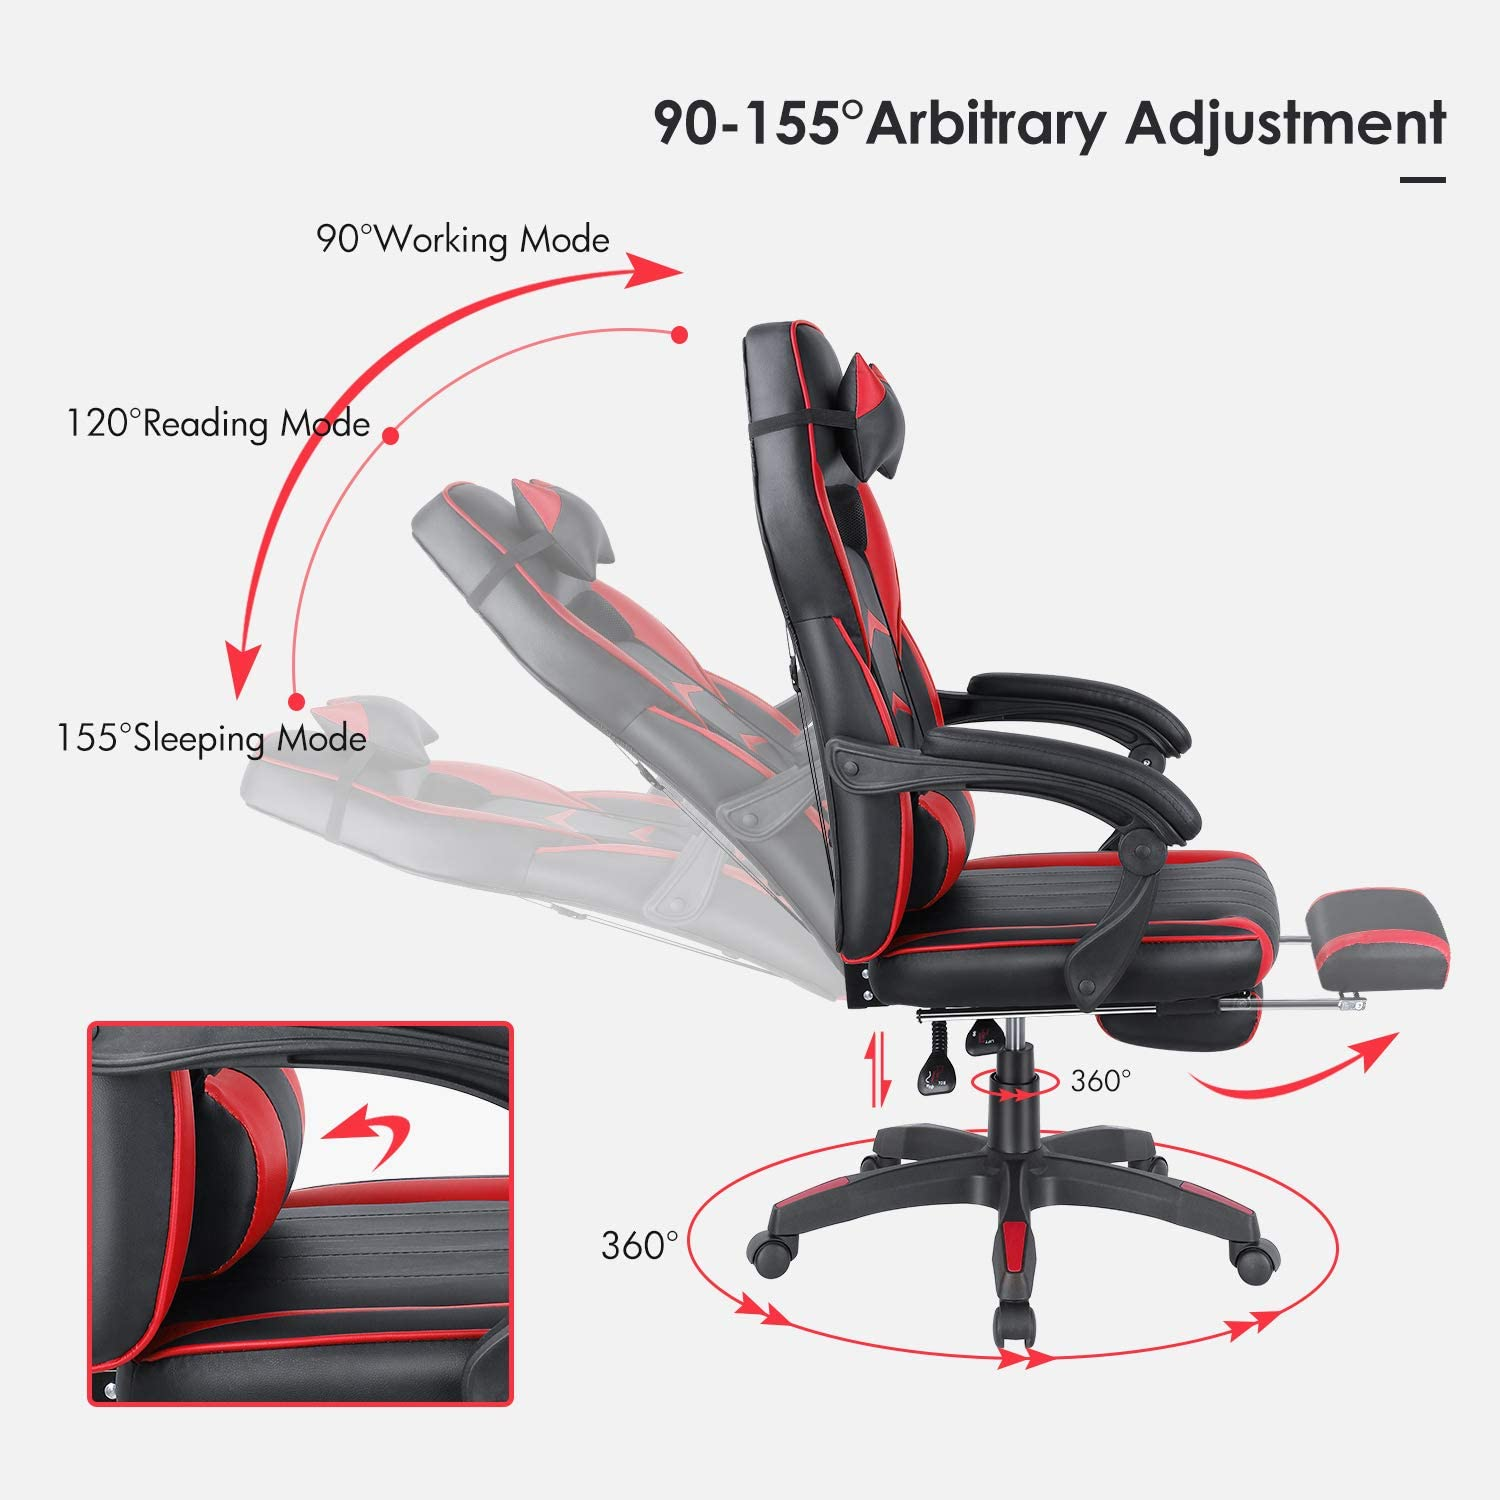 E-Sports Recliner Swivel with Headrest Lumbar Pillow Footrest Home Office High-Back Ergonomic Backrest Executive Seat Red Height /& Backrest Adjustment OKVAC Racing Style PC Video Gaming Chair